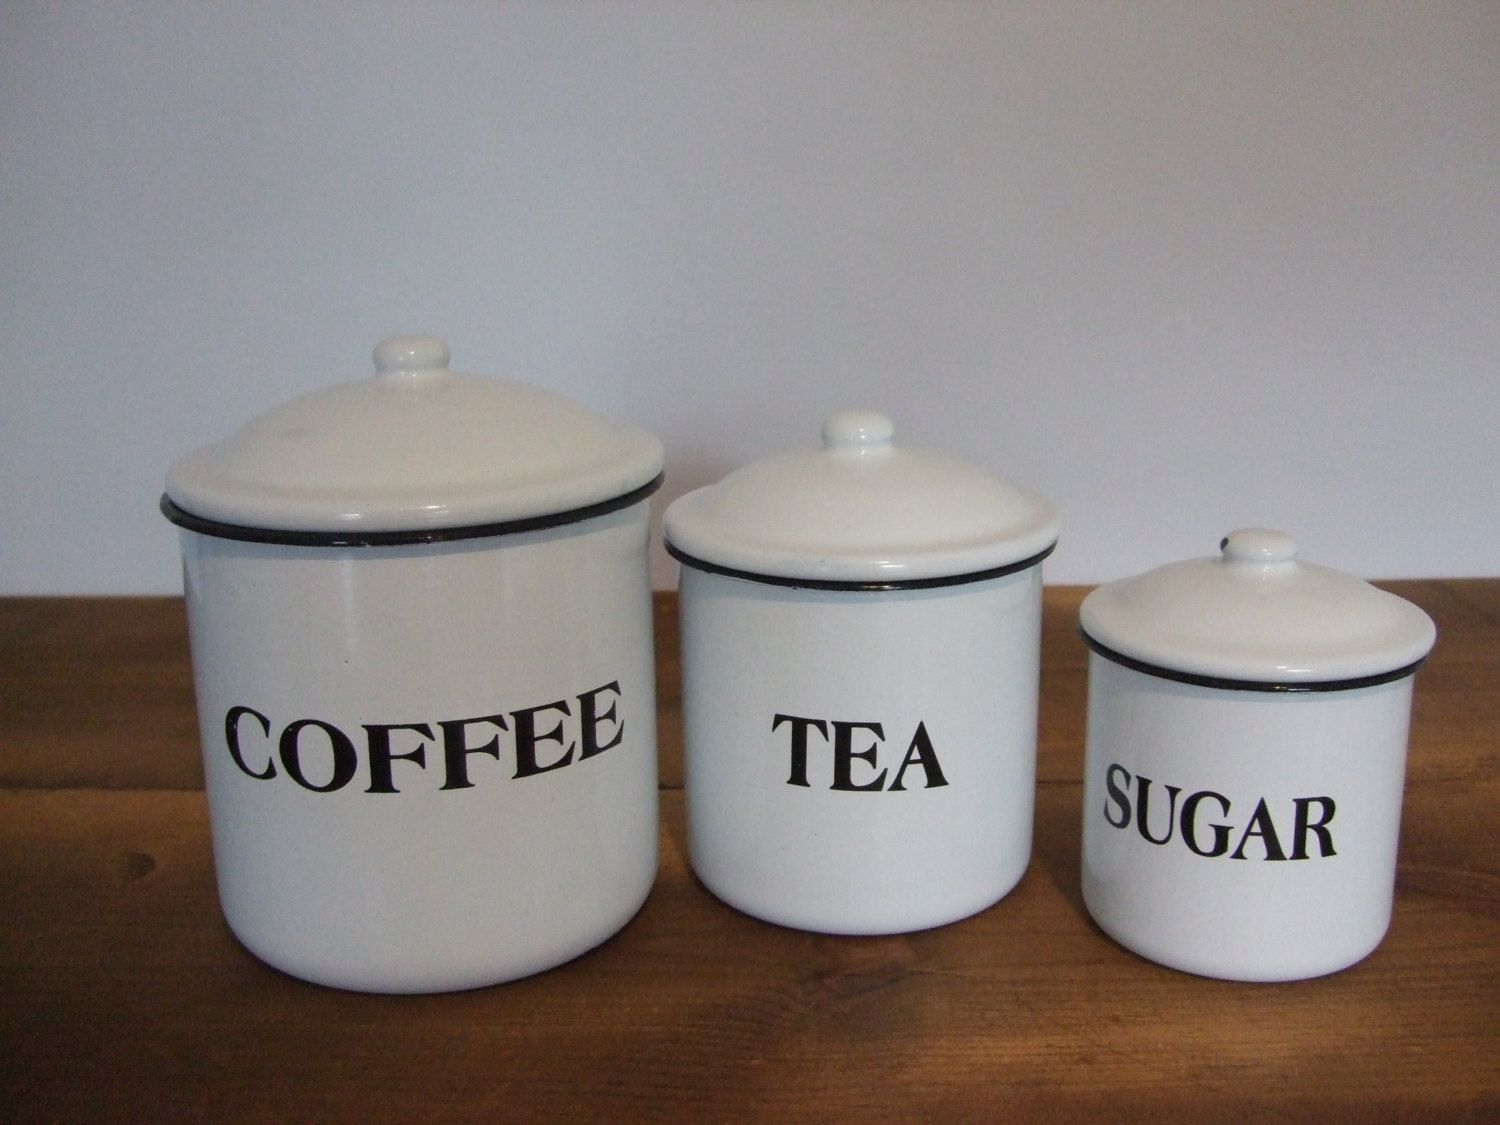 Vintage Enamel Canister Set Coffee Tea Sugar White with Black